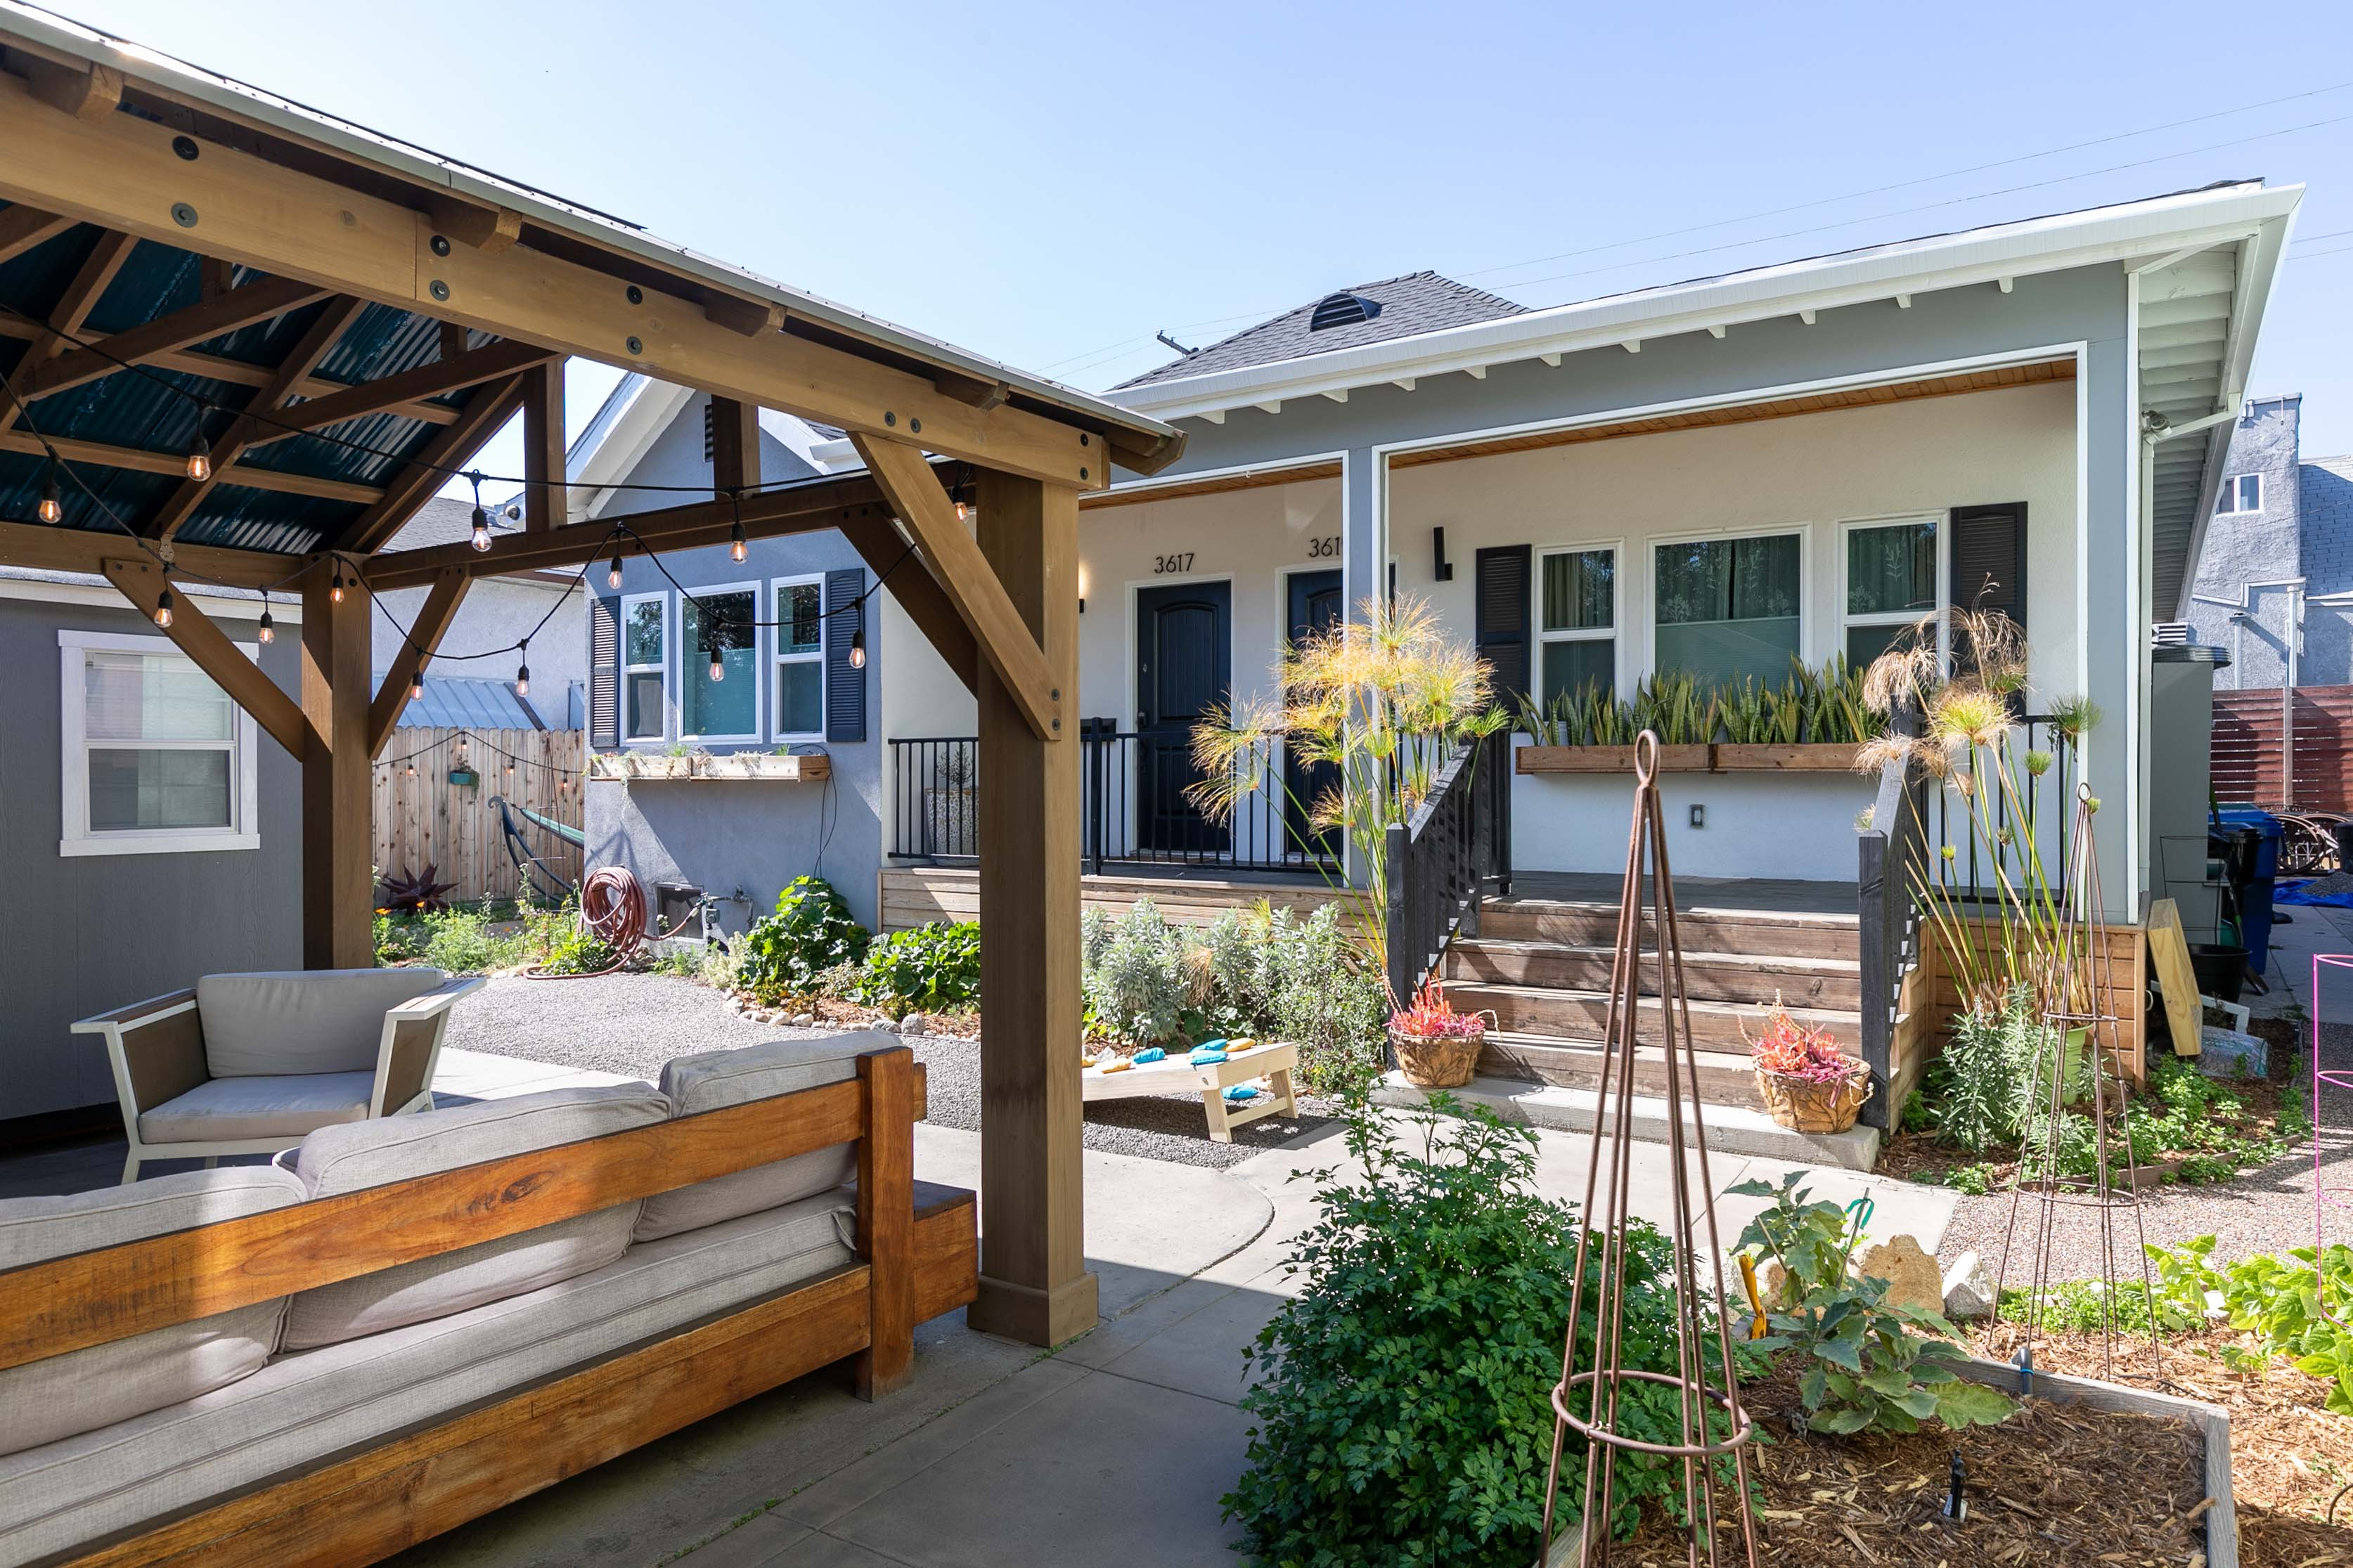 AMAZING NELA LOCATION - HIGHLAND PARK & MT.WASHINGTON ADJACENT | SWEET UPDATED DUPLEX W/ DUAL MASTERS | OUTDOOR LOUNGE W/ BBQ & SEATING | GATED PARKING INCLUDED